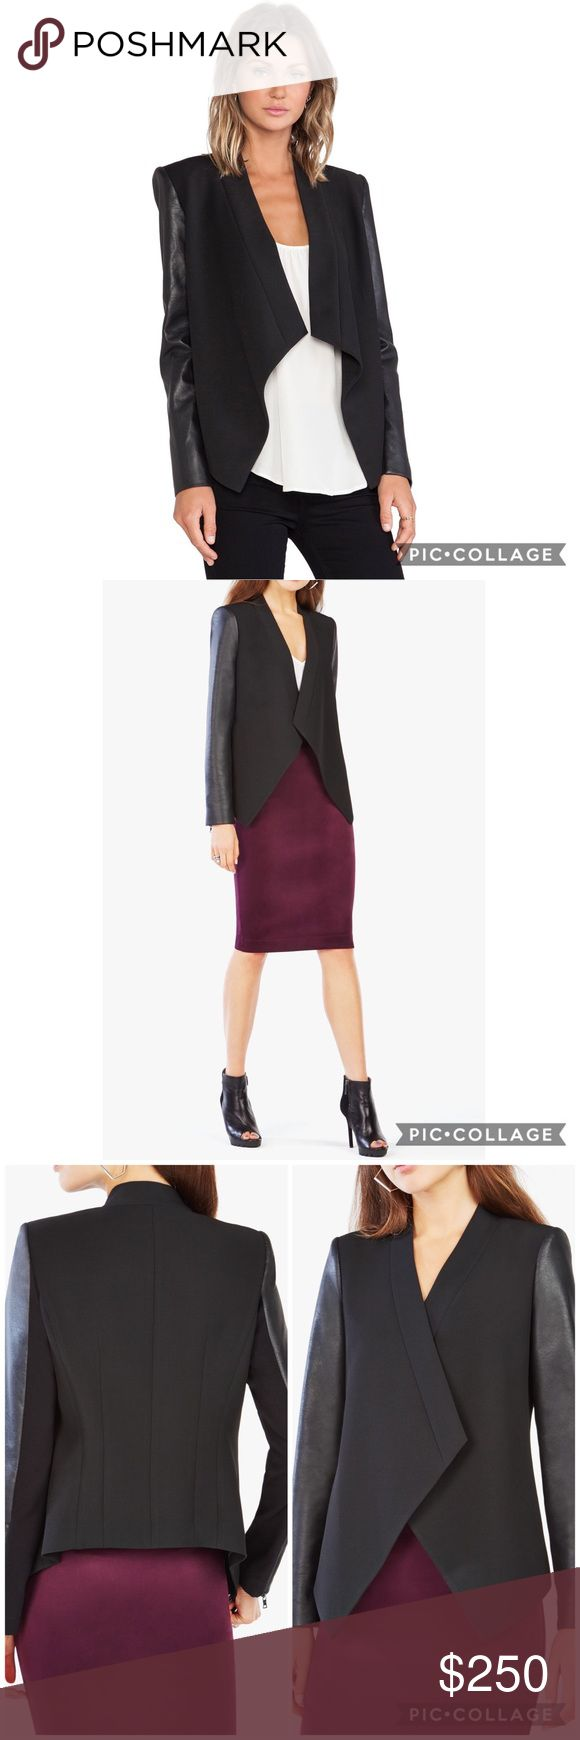 """$298 BCBG MaxAzria Abree Relaxed Jacket Instantly transform any look with this softly tailored jacket.  Cascading open front. Long sleeves. Topstitched trim. Shoulder pads. Self: Polyester, Rayon, Spandex double face. Contrast: 1: Faux leather face. Polyester back. 2: Rayon, Nylon, Spandex ponte. Lining: Polyester. Dry Clean Only. Measures approximately 26.75"""" from shoulder to hem. Fitted sleeves. Relaxed-fit bodice. BCBGMaxAzria Jackets & Coats Blazers"""